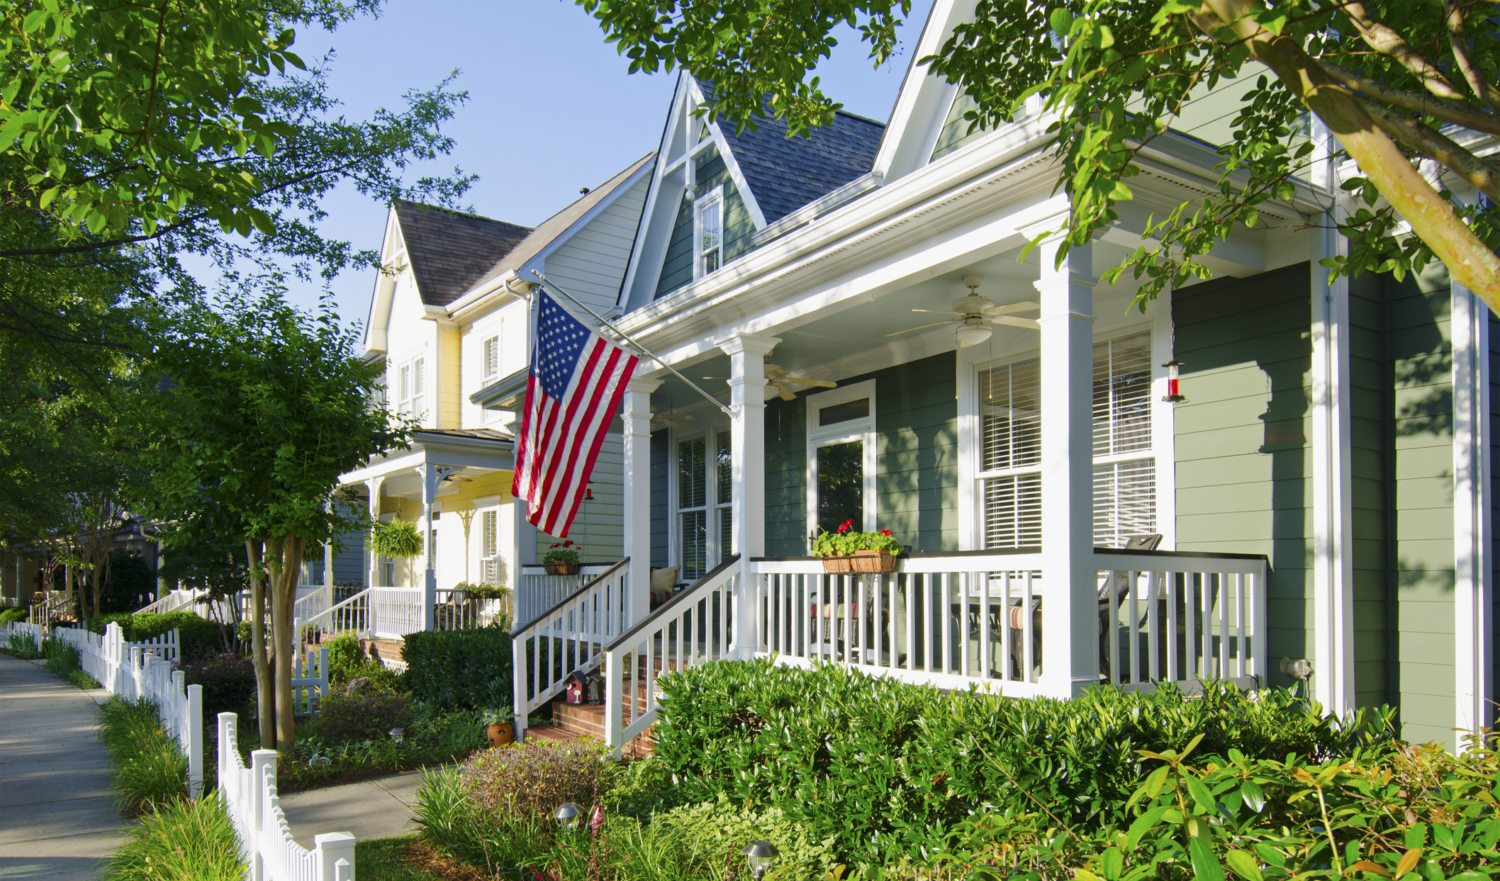 The American Dream of a house in a nice neighborhood with a white picket fence is captured in this iconic image.